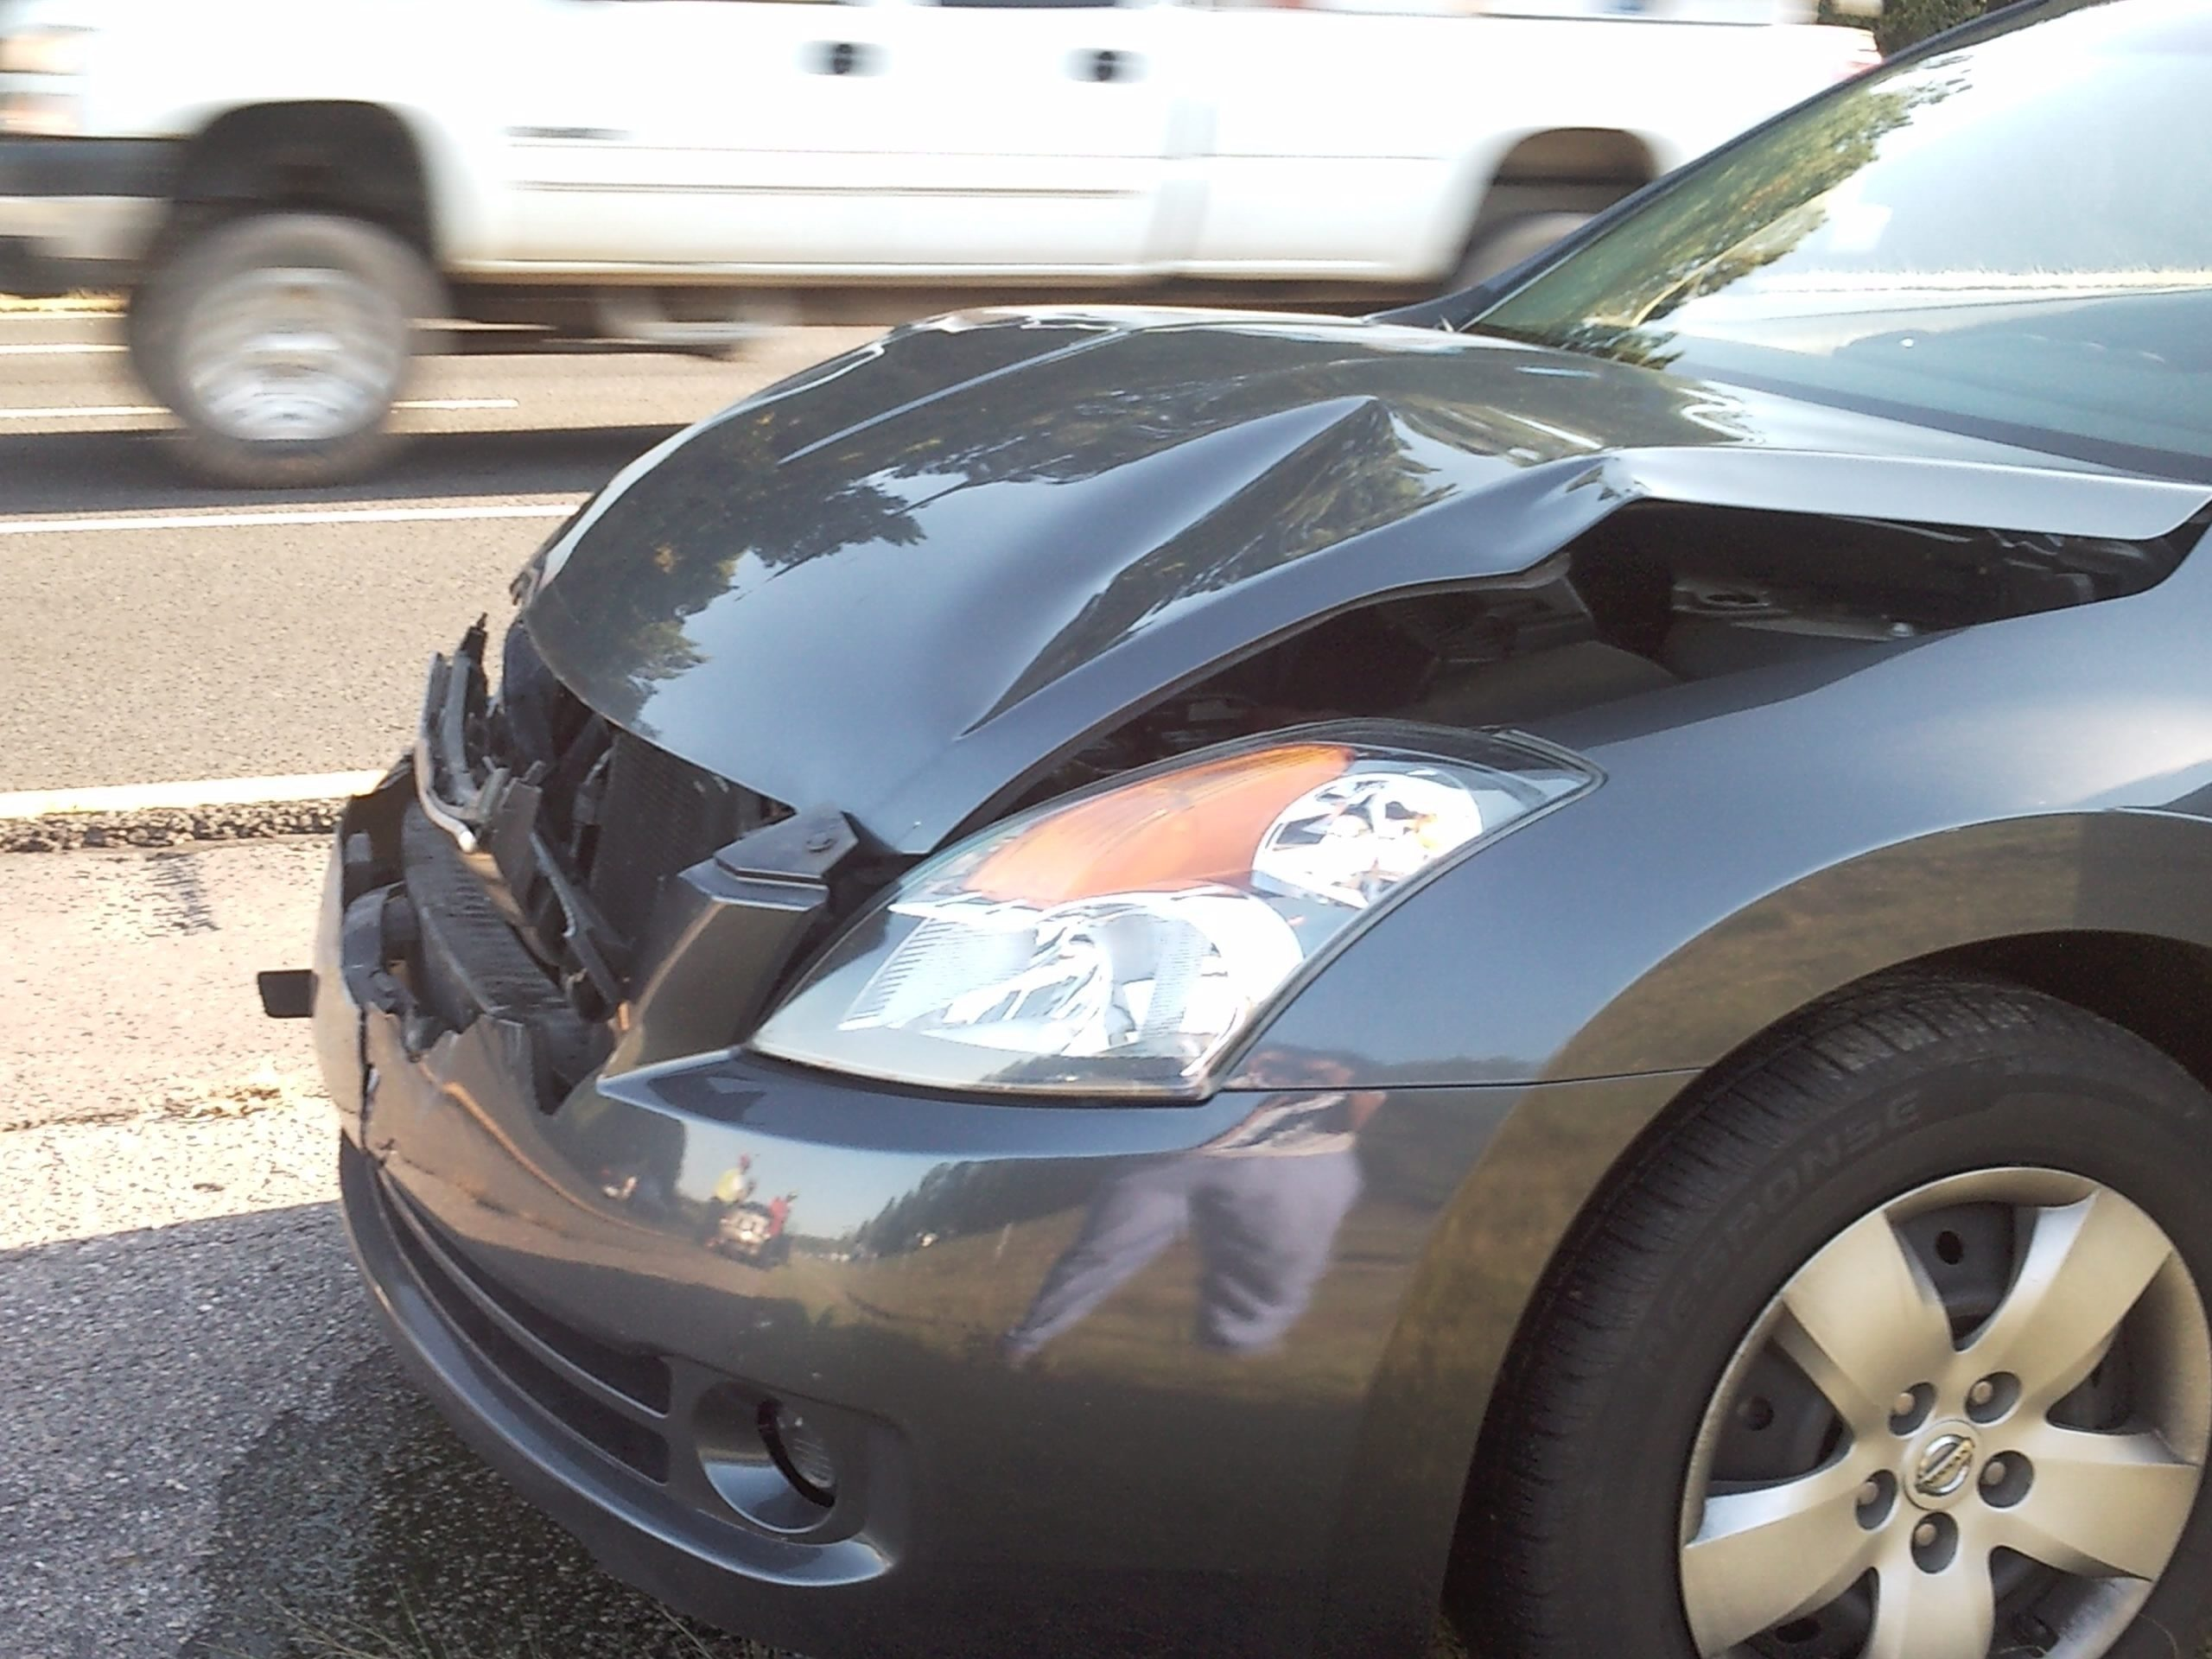 Top 759 complaints and reviews about nissan altima page 12 i have had my 08 nissan altima for not even a year i bought it used with 90k miles everything went good for a few months until i took it to get vanachro Choice Image